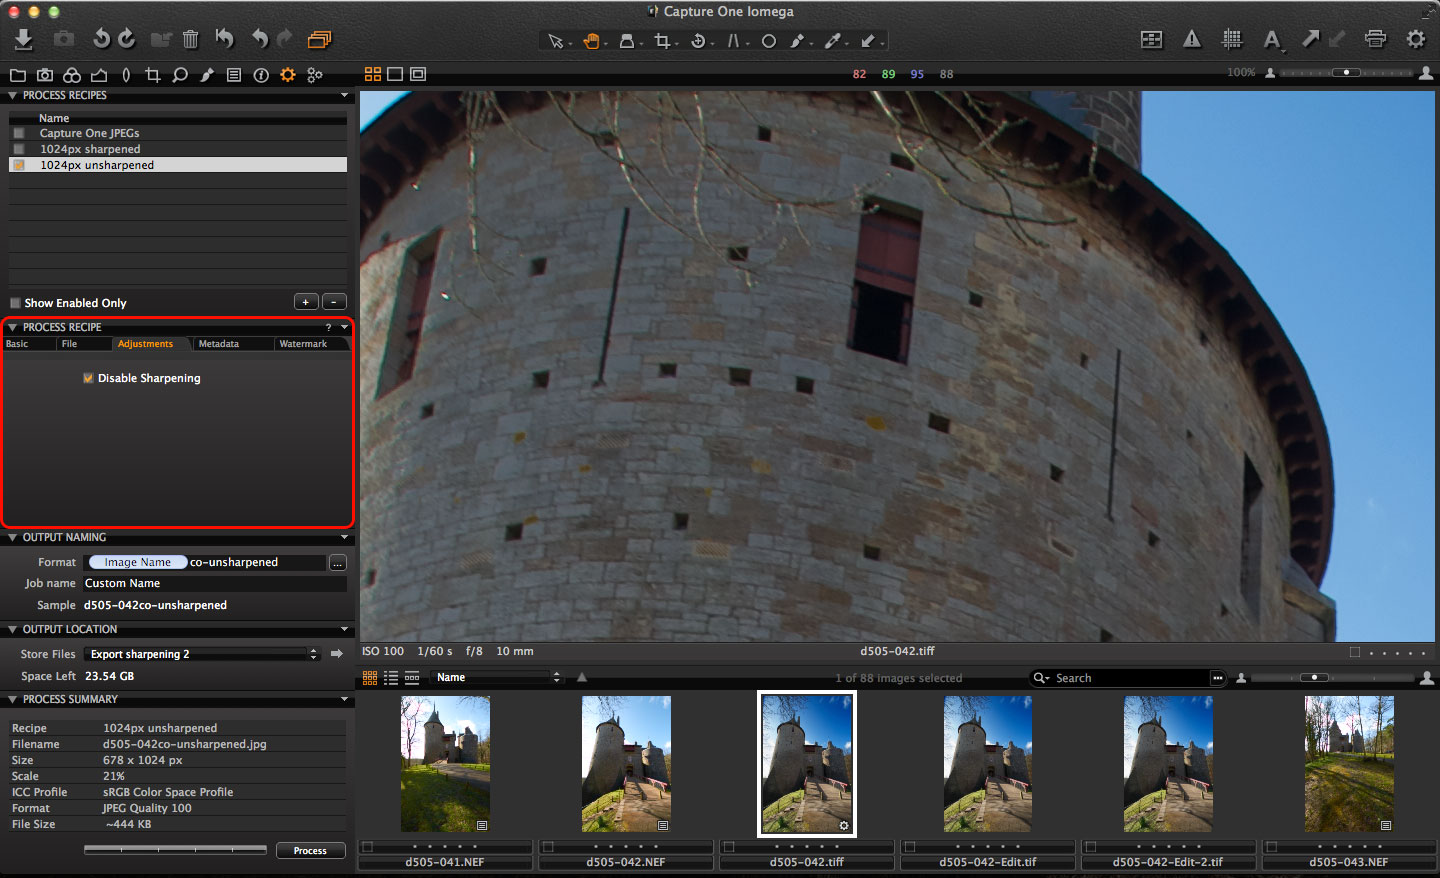 Export sharpening using DxO and Capture One - Life after Photoshop